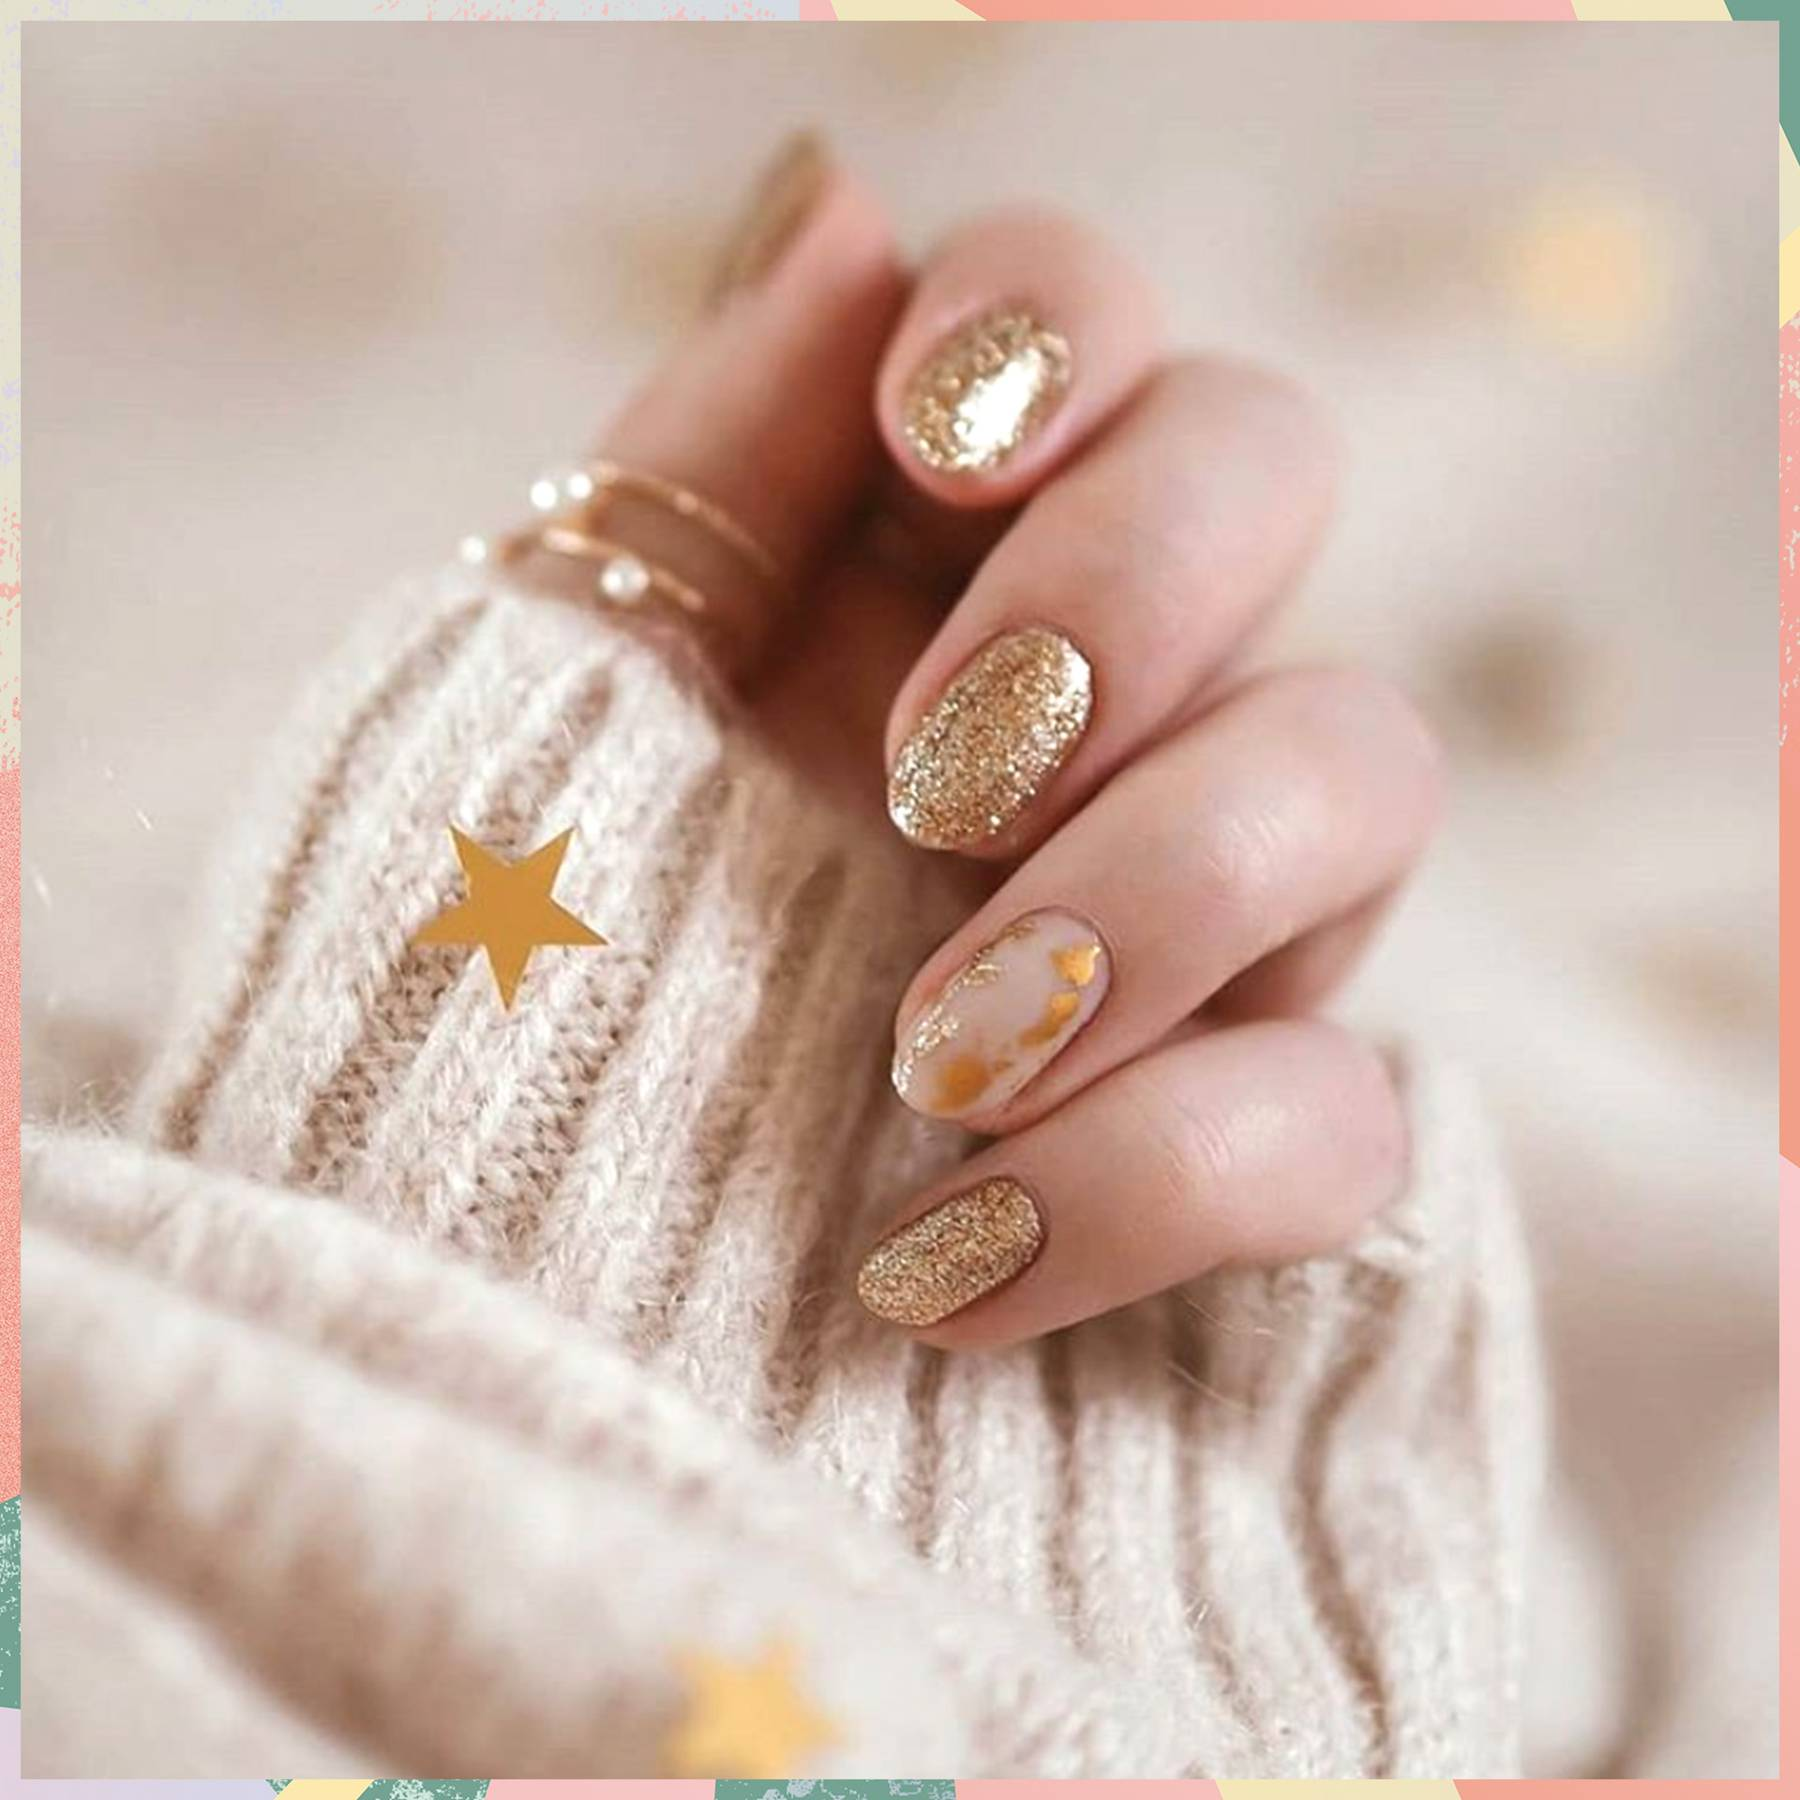 These are the best winter nail art designs we've seen on Instagram